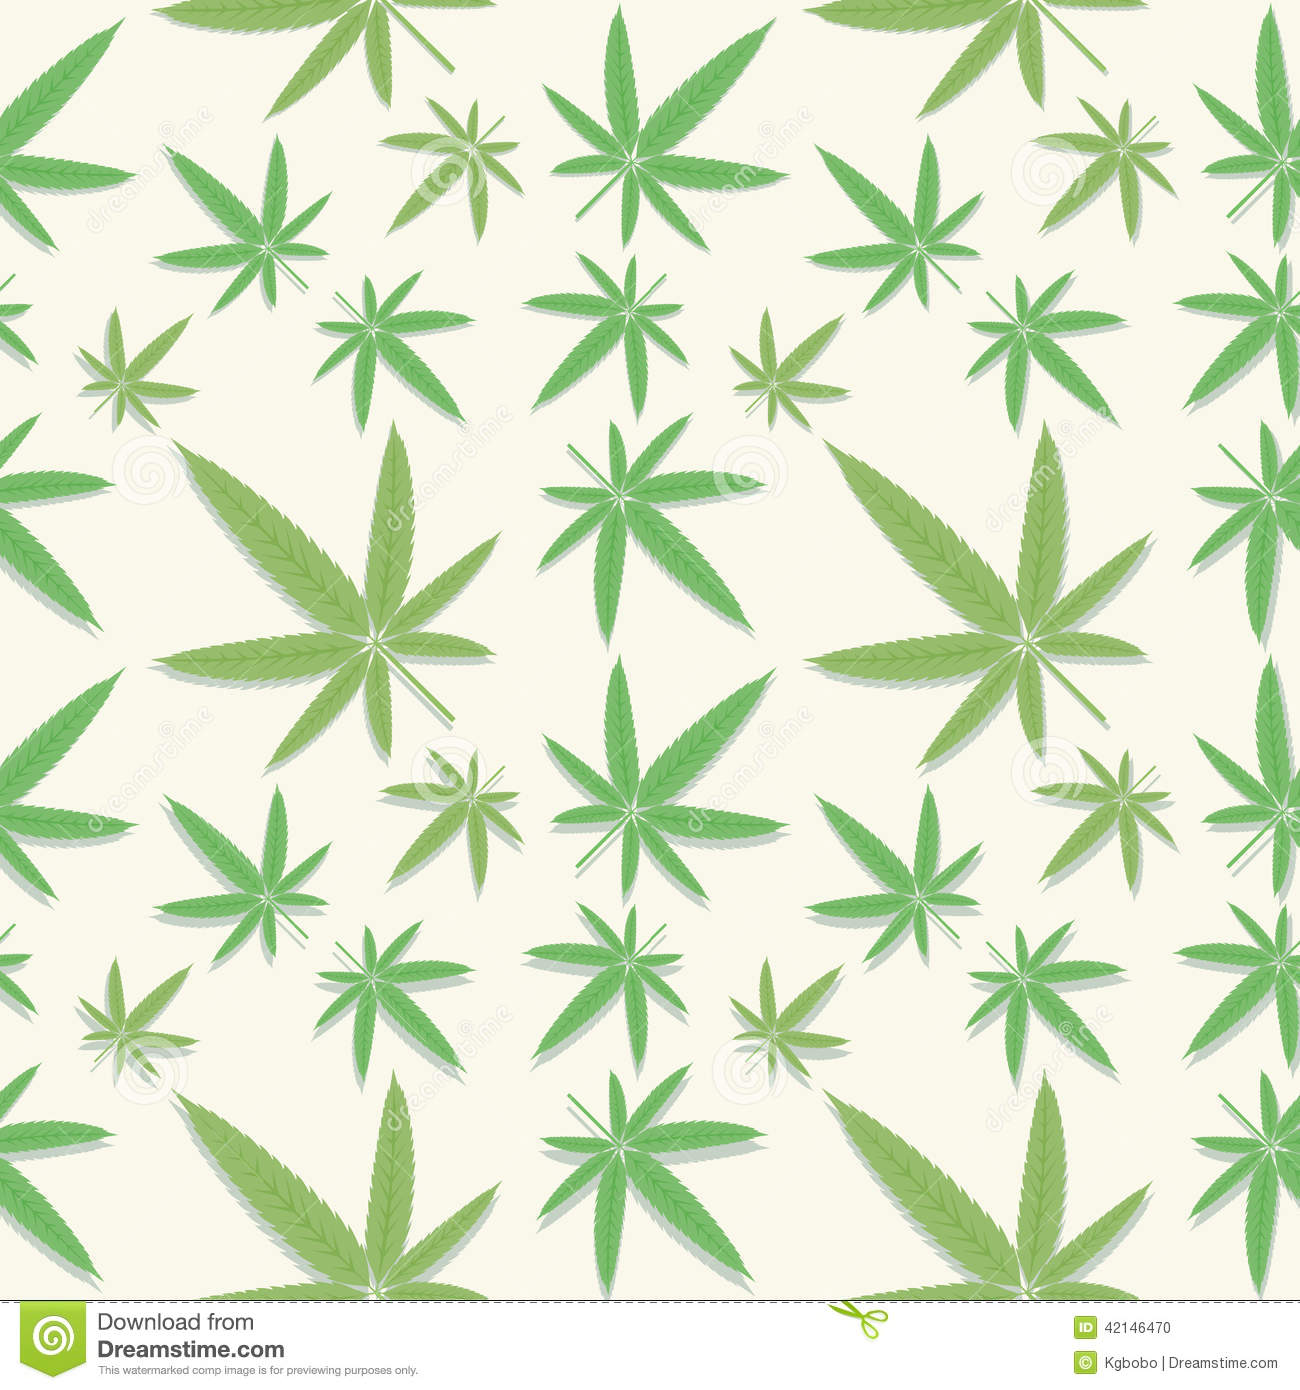 weed leaf template - green cannabis leaves pattern stock vector image 42146470